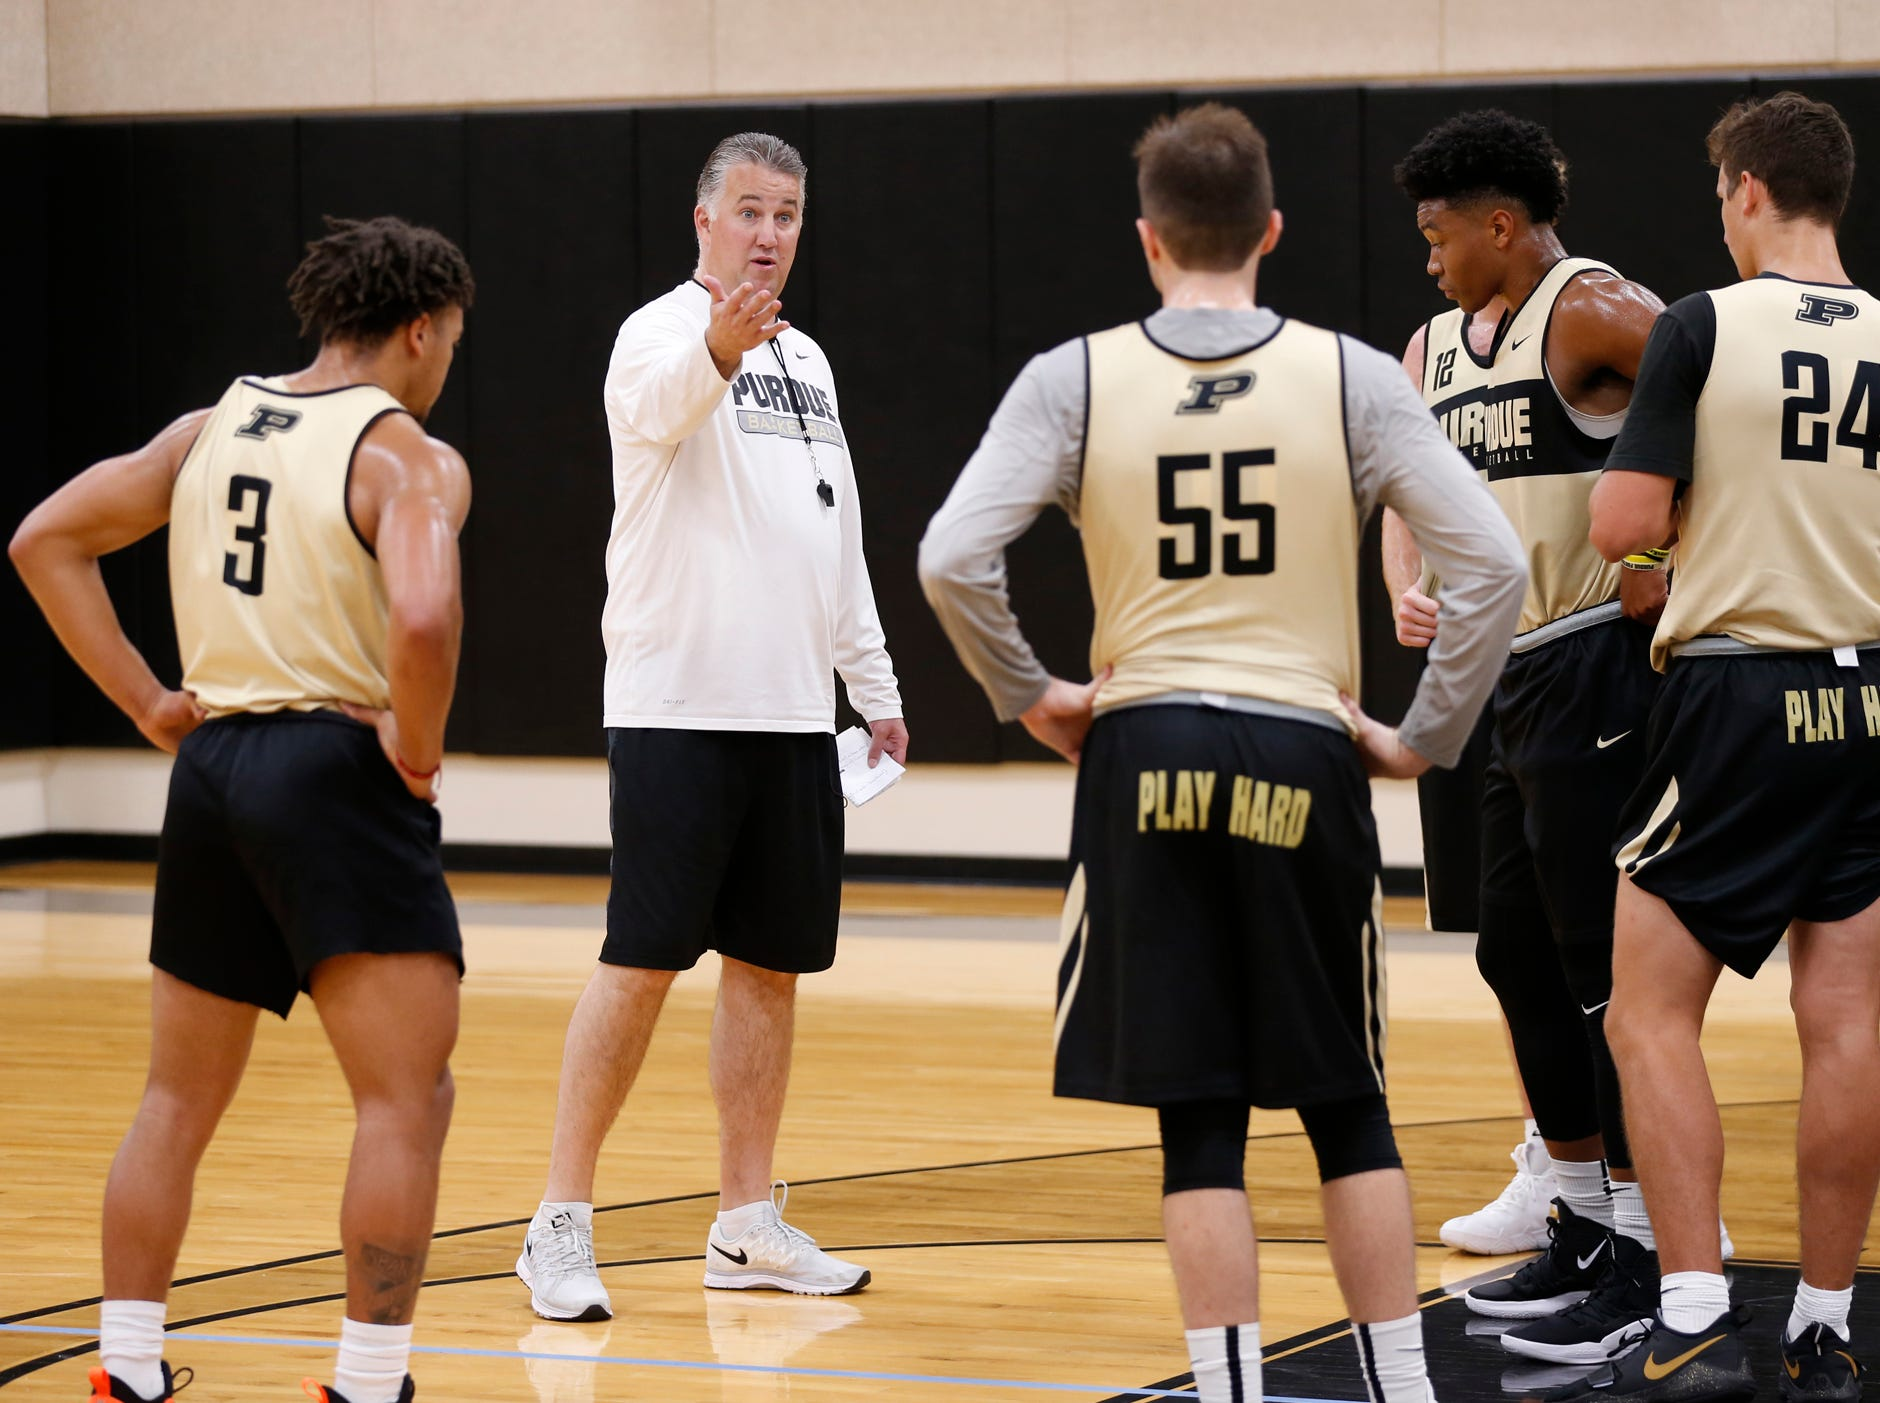 Head coach Matt Painter with instructions during the first official practice of the season for Purdue men's basketball Tuesday, September 25, 2018, at Cardinal Court in Mackey Arena.